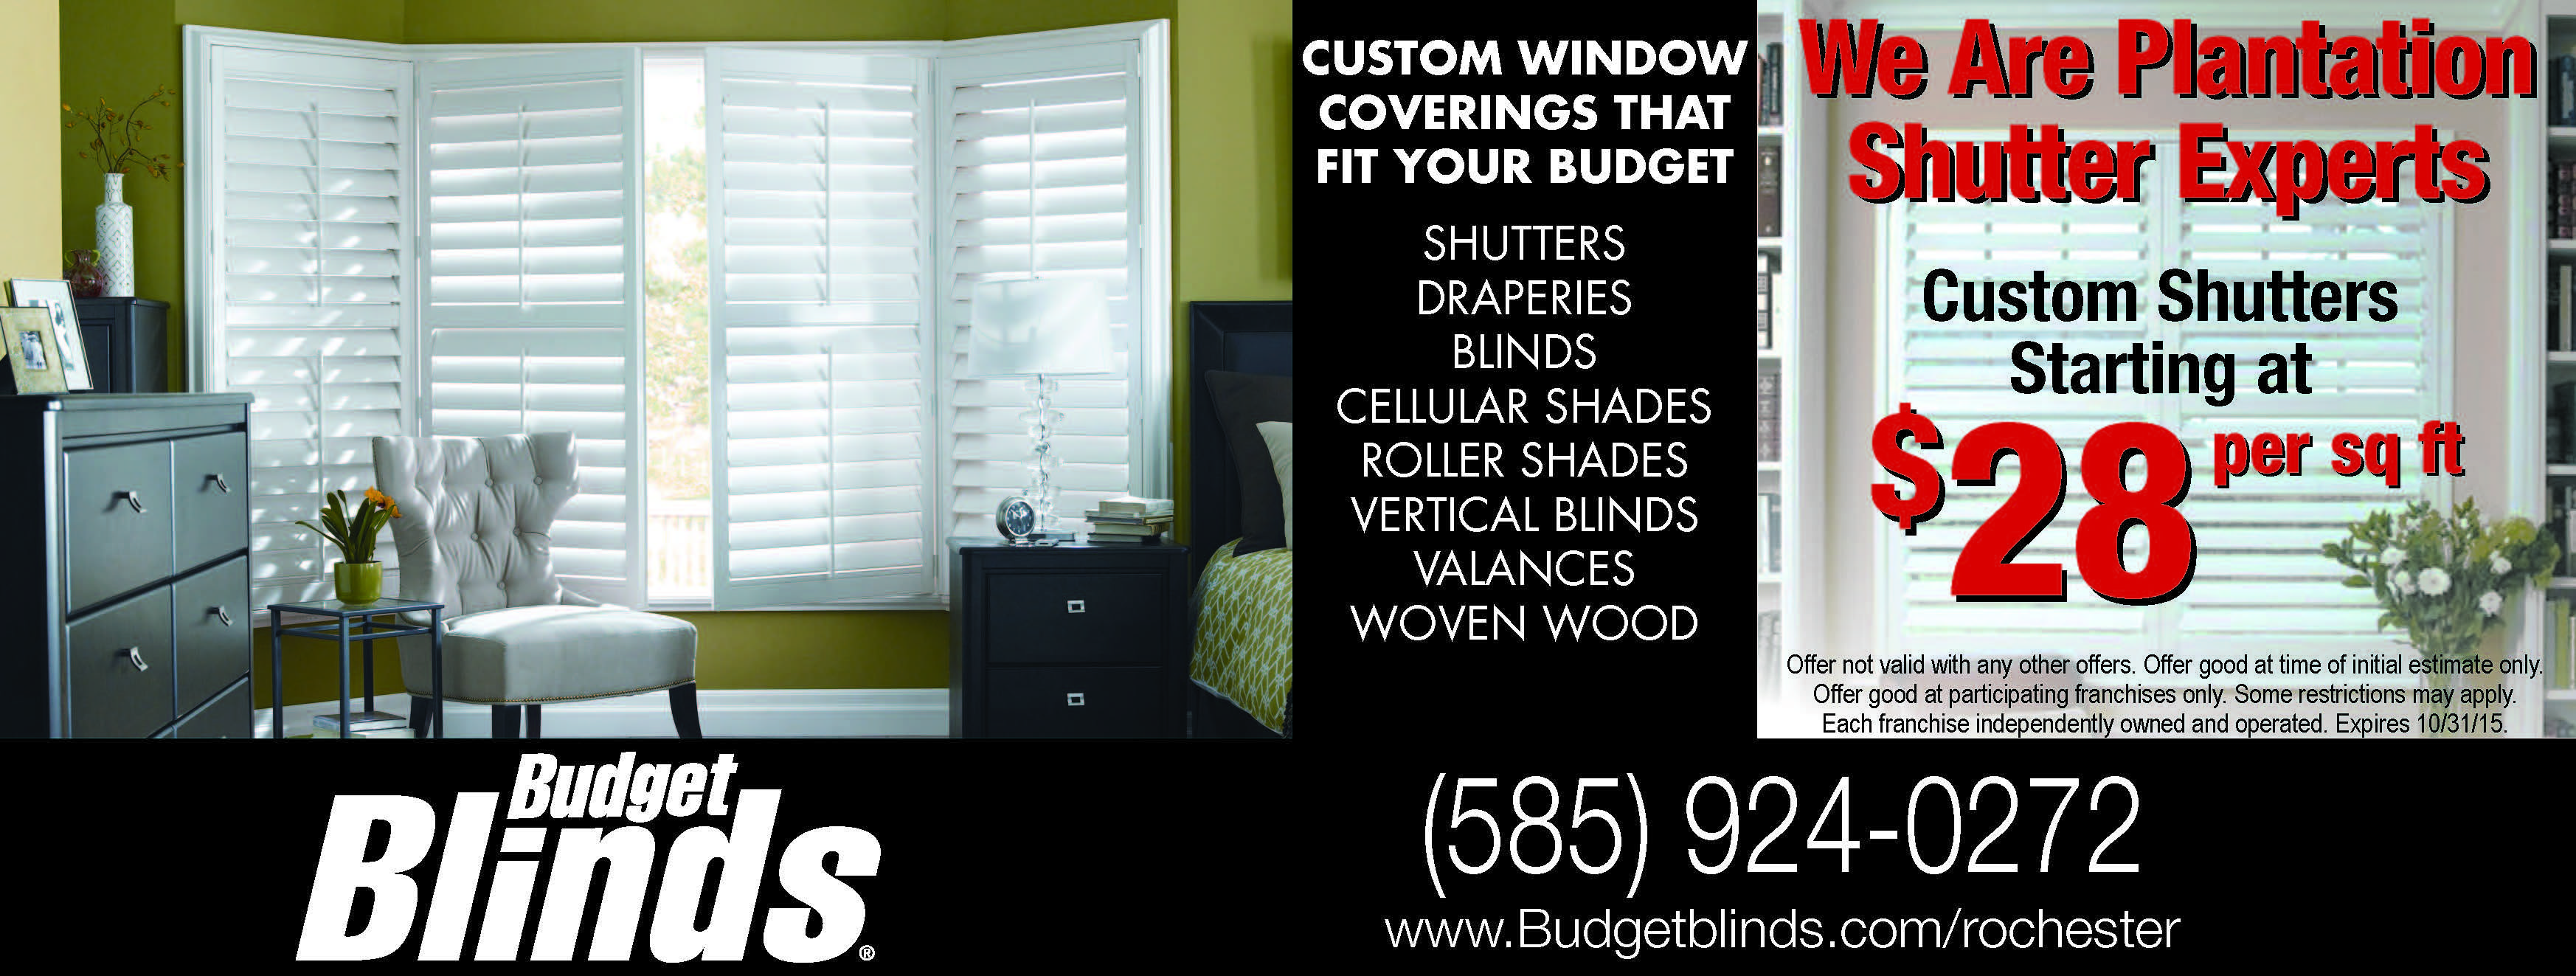 Window coverings of idaho  save on your blinds and shades with budget blinds now offering